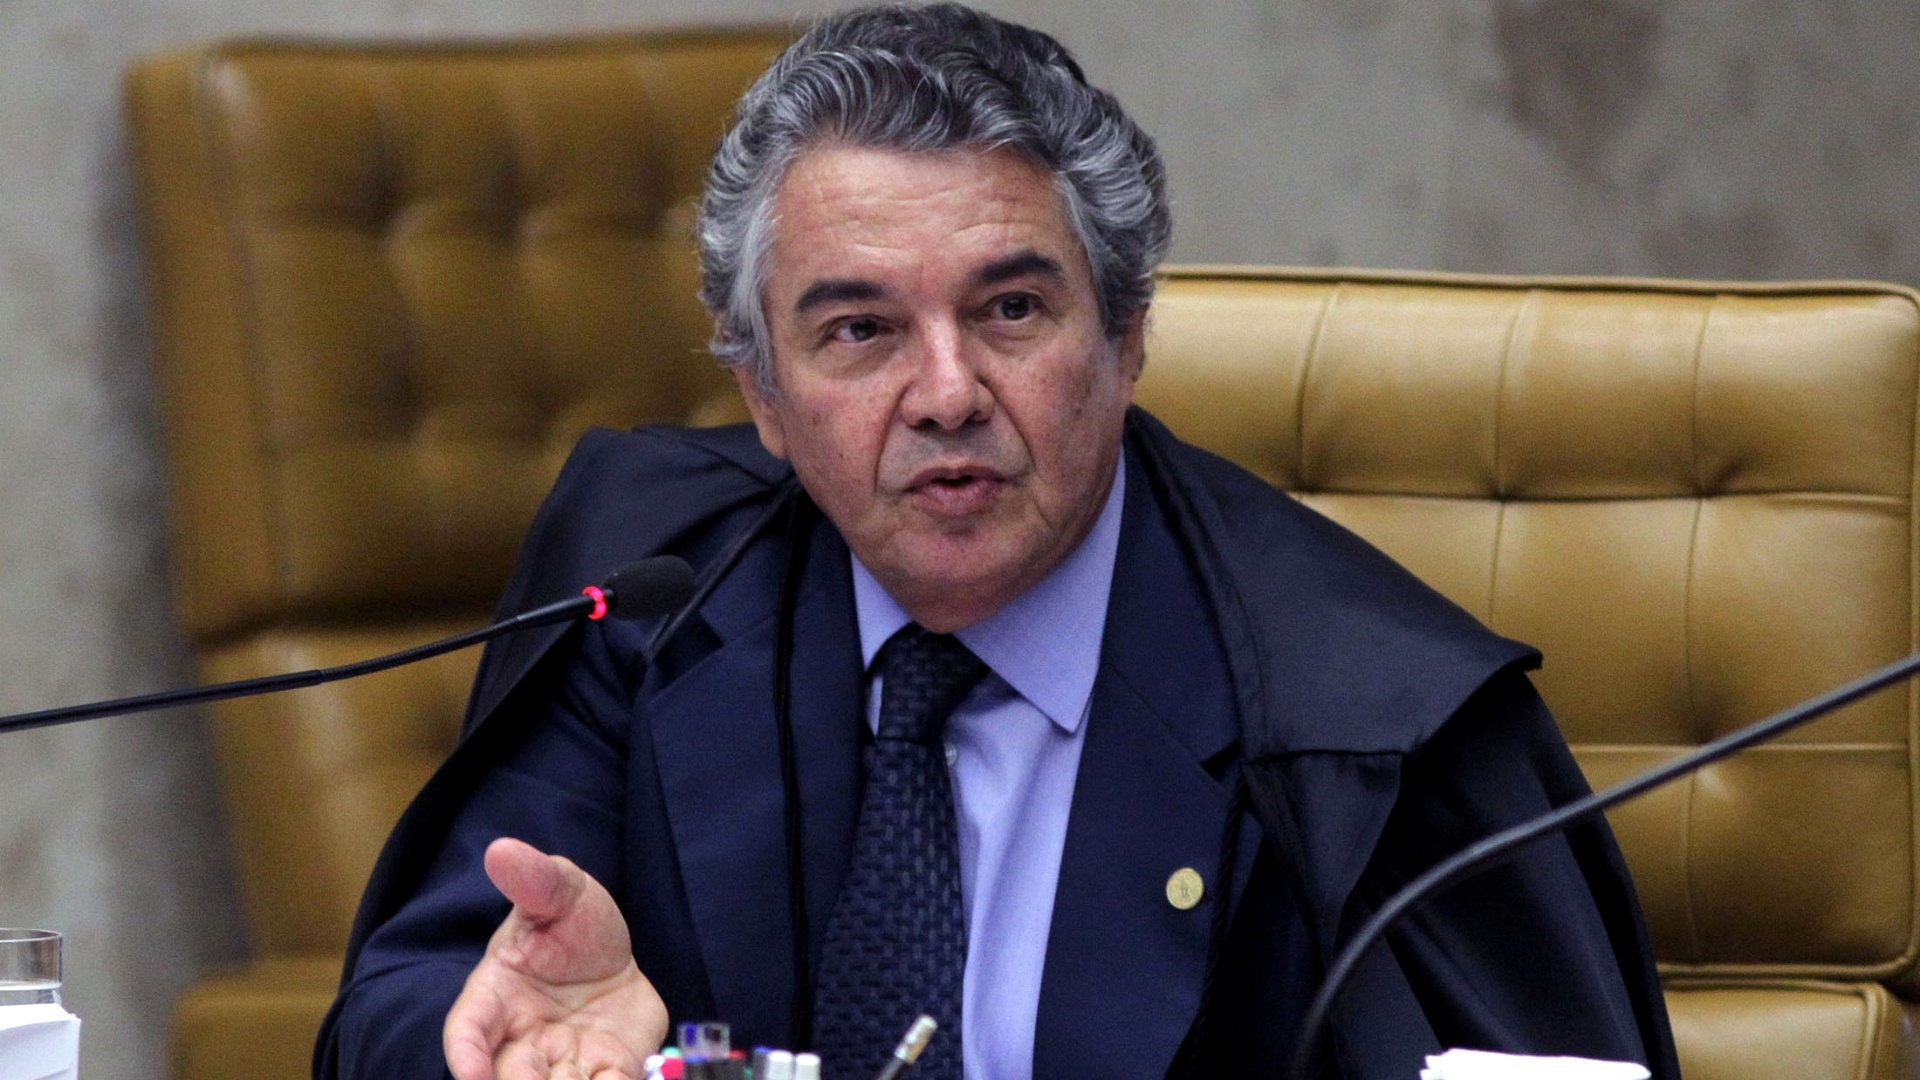 22.out.2012 - Ministro Marco Aurlio Mello acompanha voto do relator do processo do mensalo, Joaquim Barbosa, e condena Dirceu e cpula do PT por formao de quadrilha 